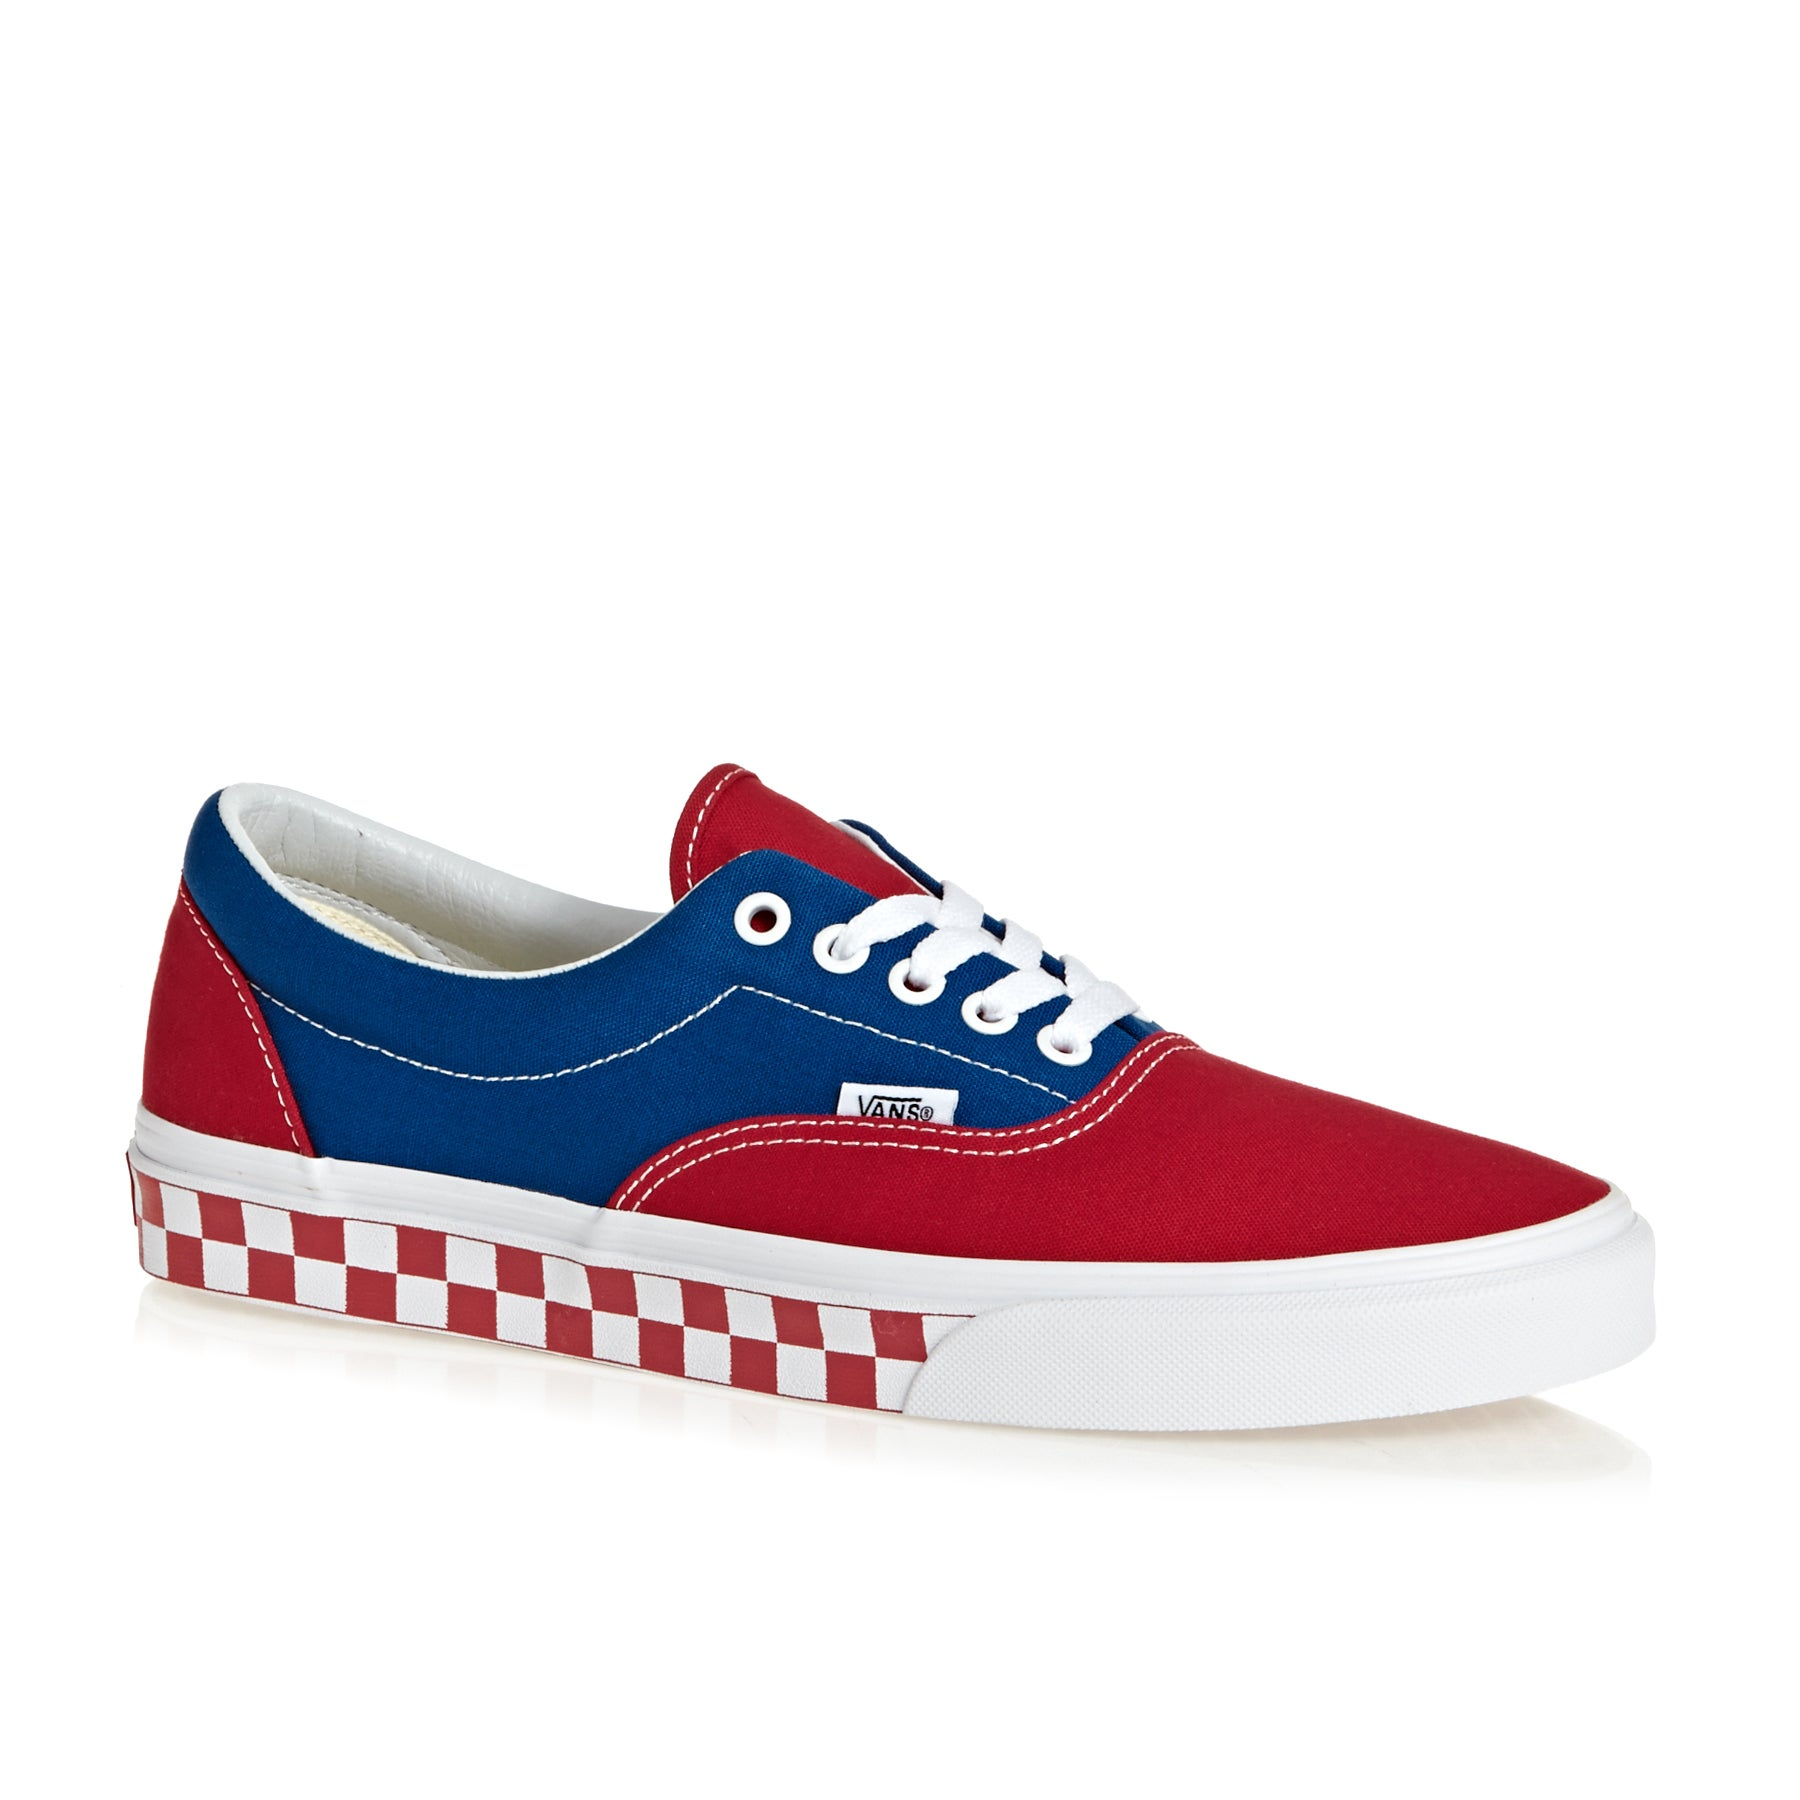 ff5703d9b0 Vans Era Unisex Footwear Shoe - Bmx Checkerboard True Blue Red All ...